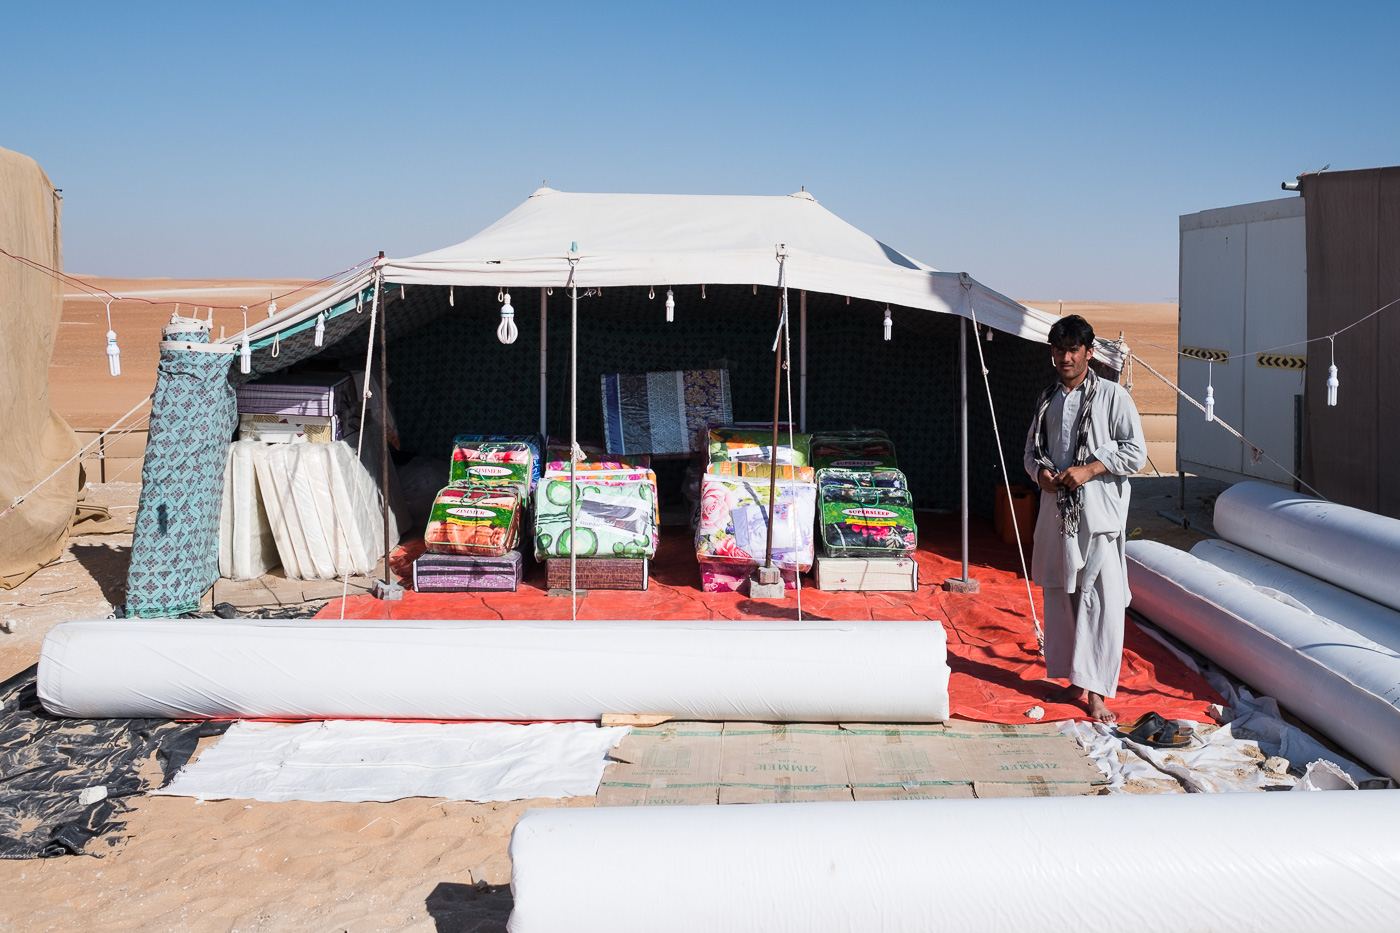 The Camel Festival shops #3